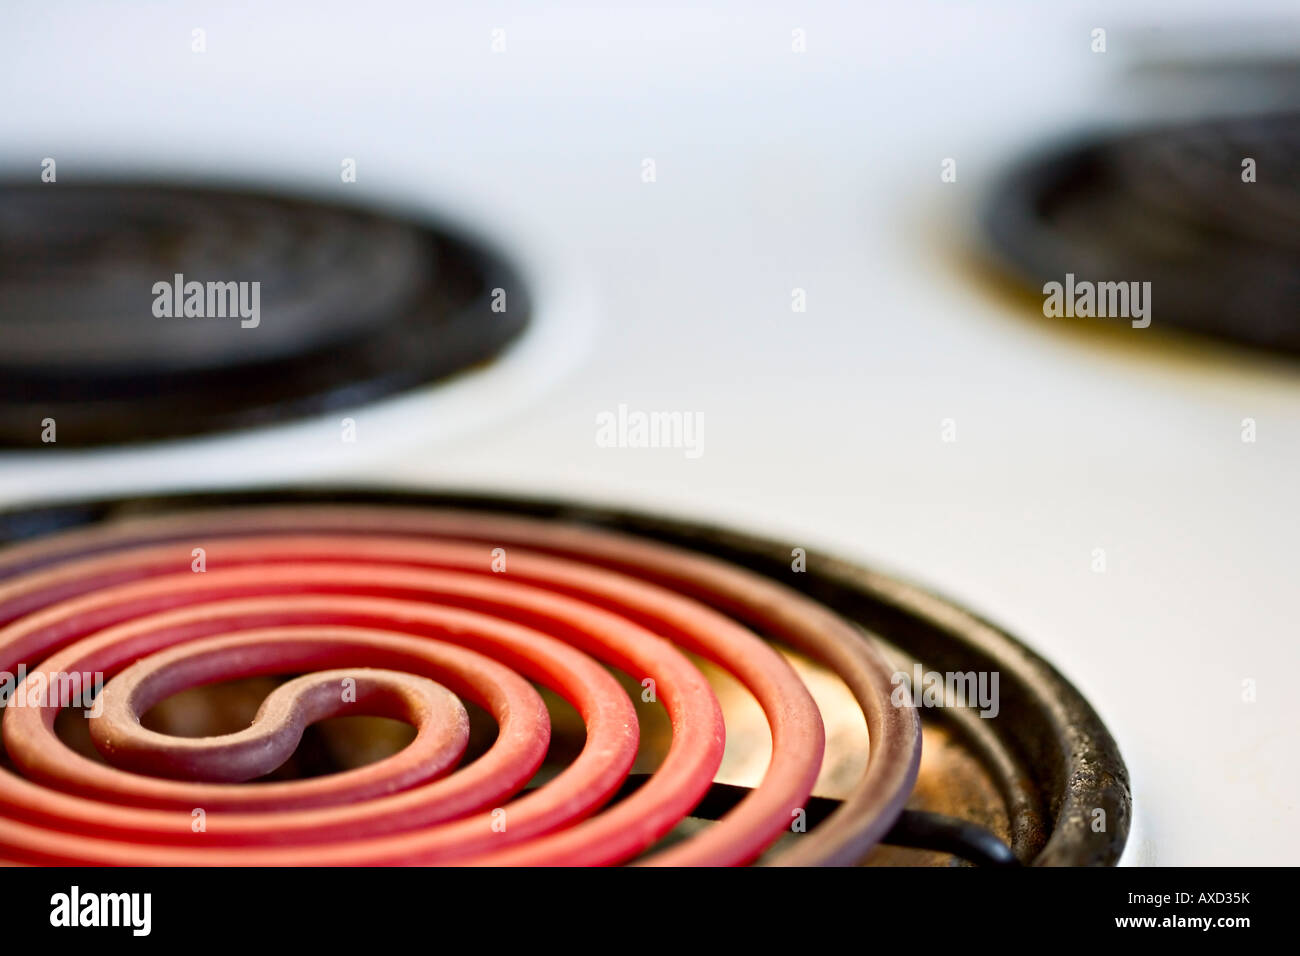 Old fashioned electric cooker hob glows red hot - Stock Image